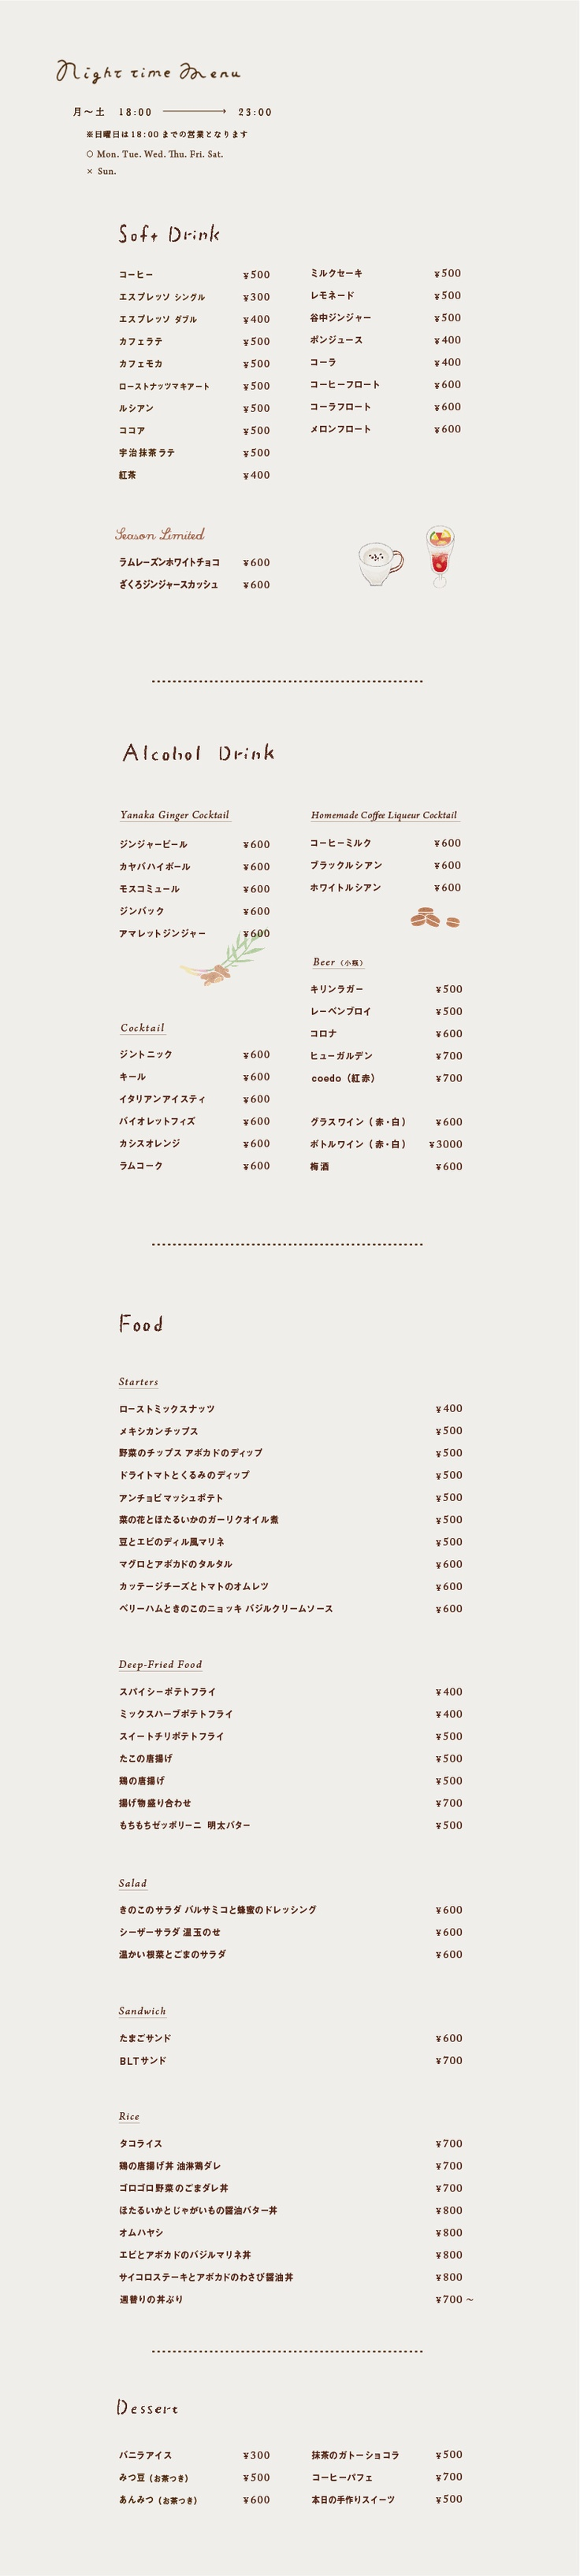 kayaba-coffee.com Nighttime Menu